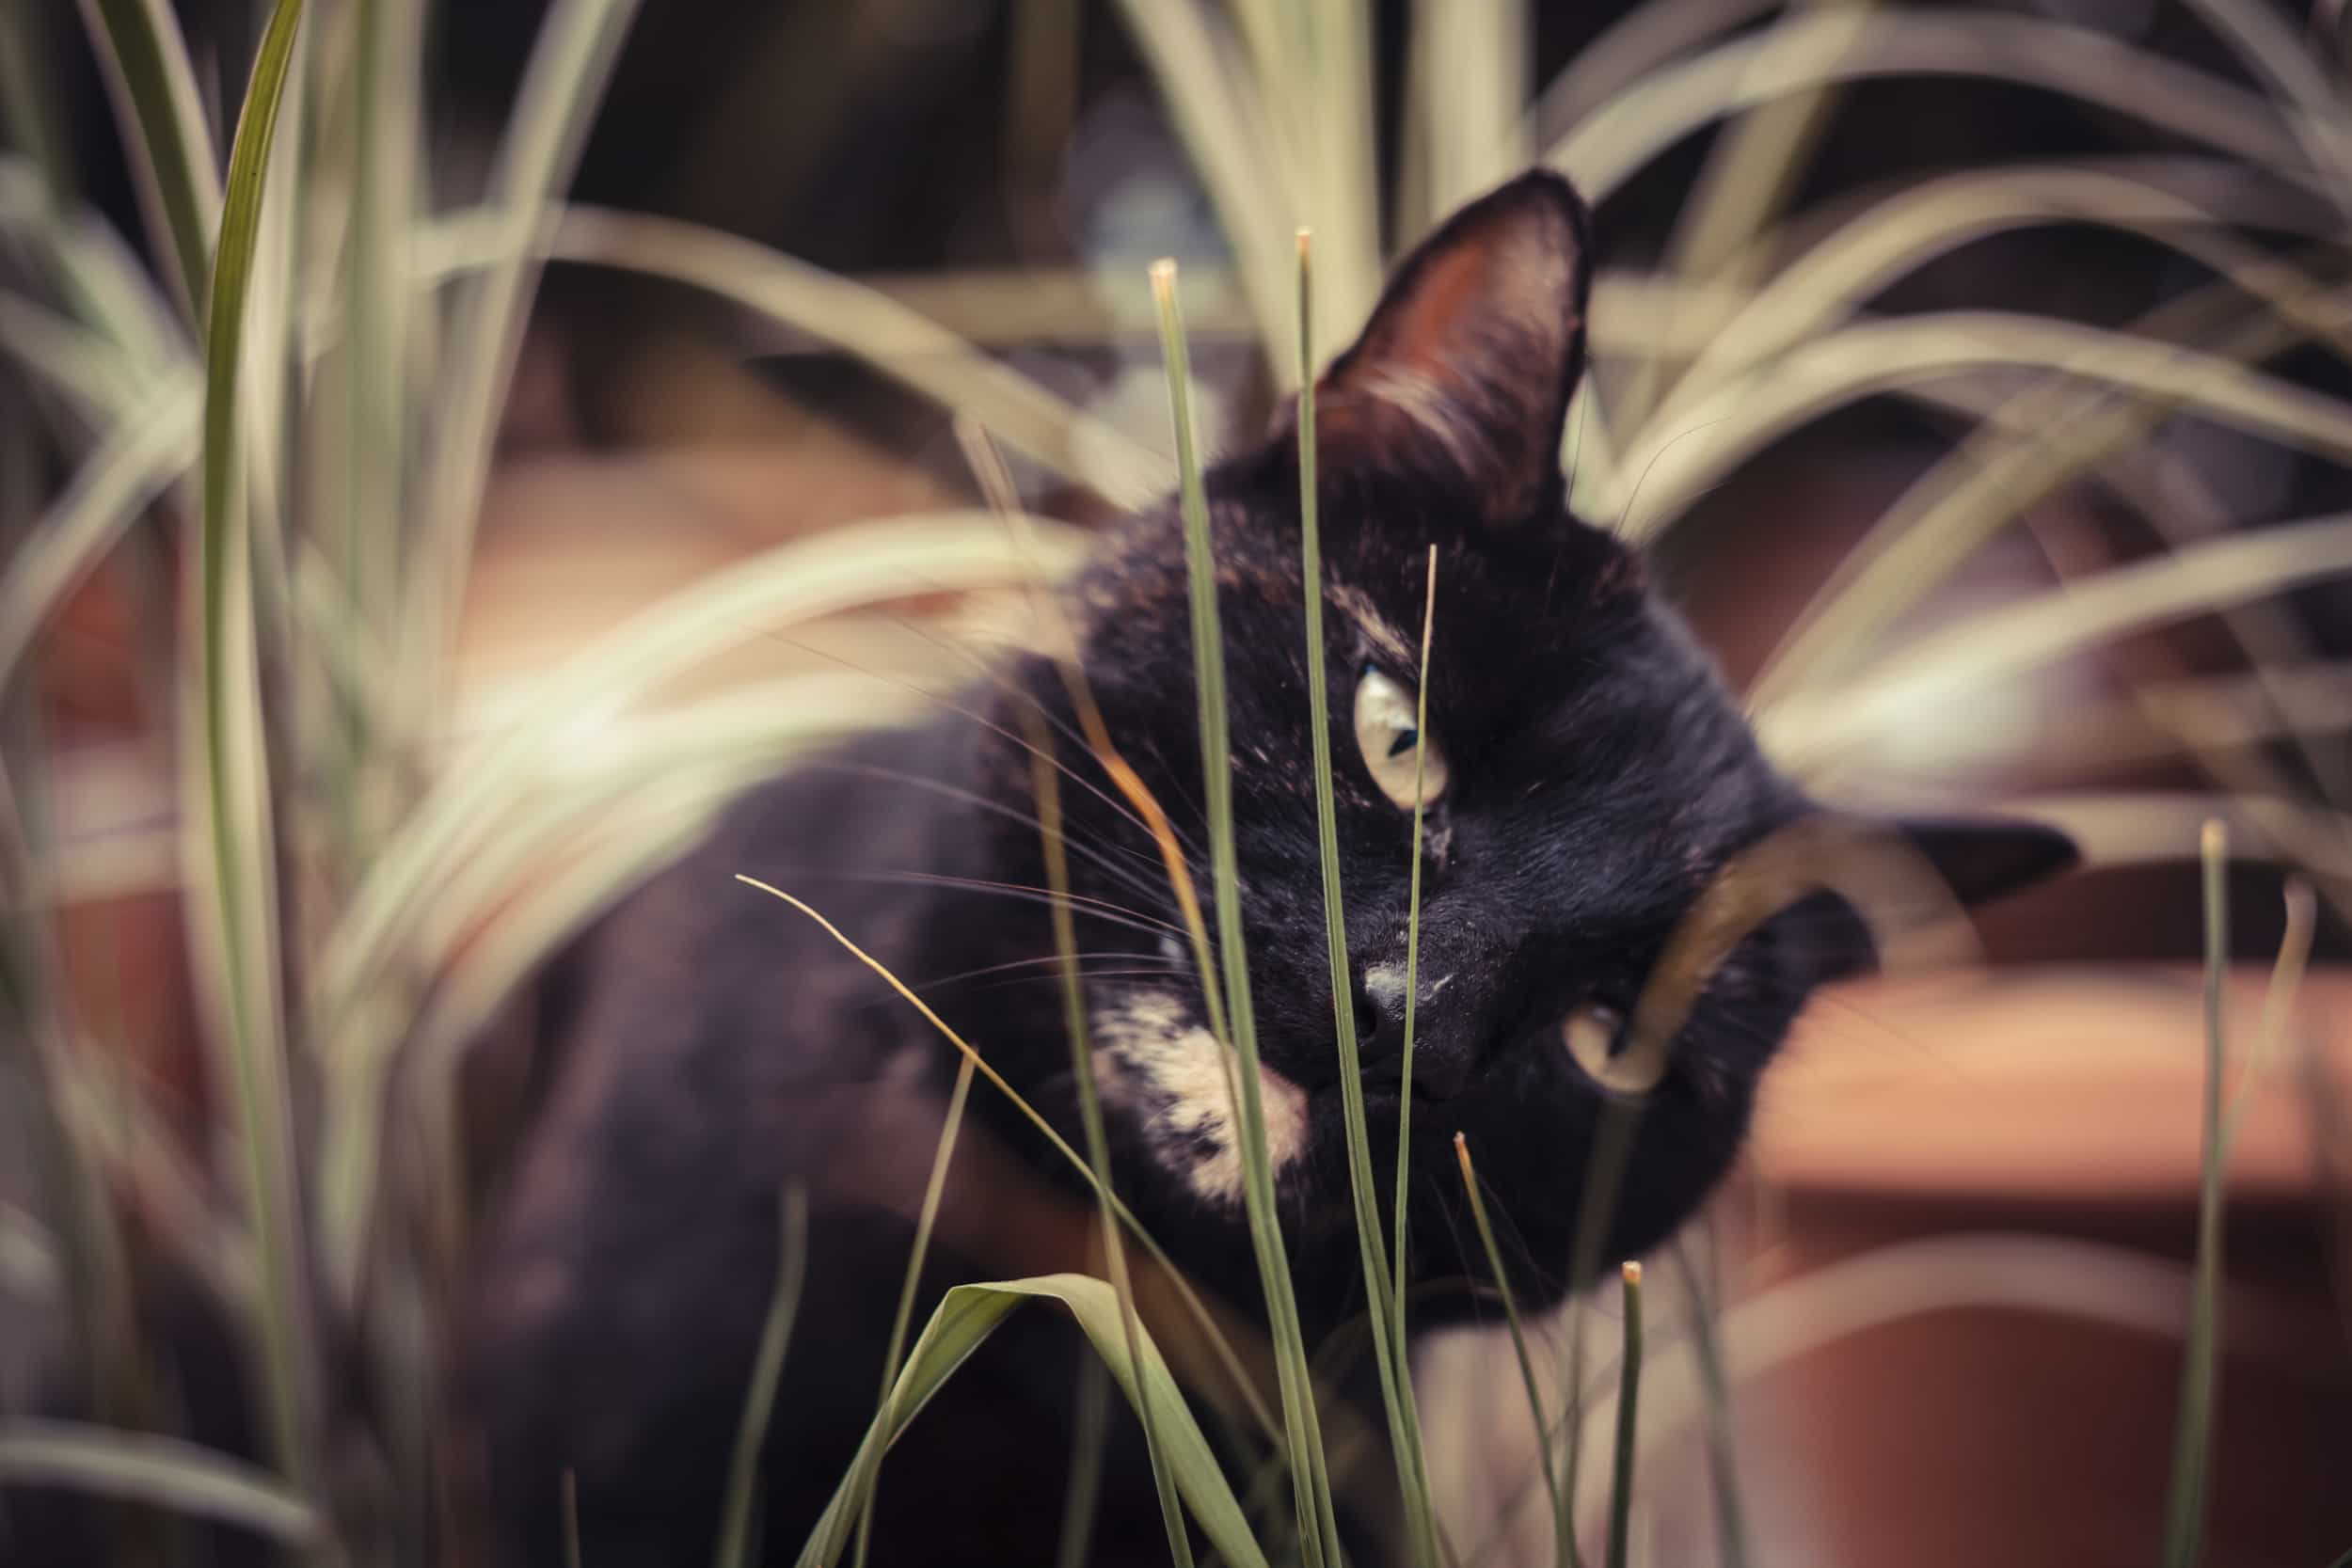 A black tabby cat is eating the house plants